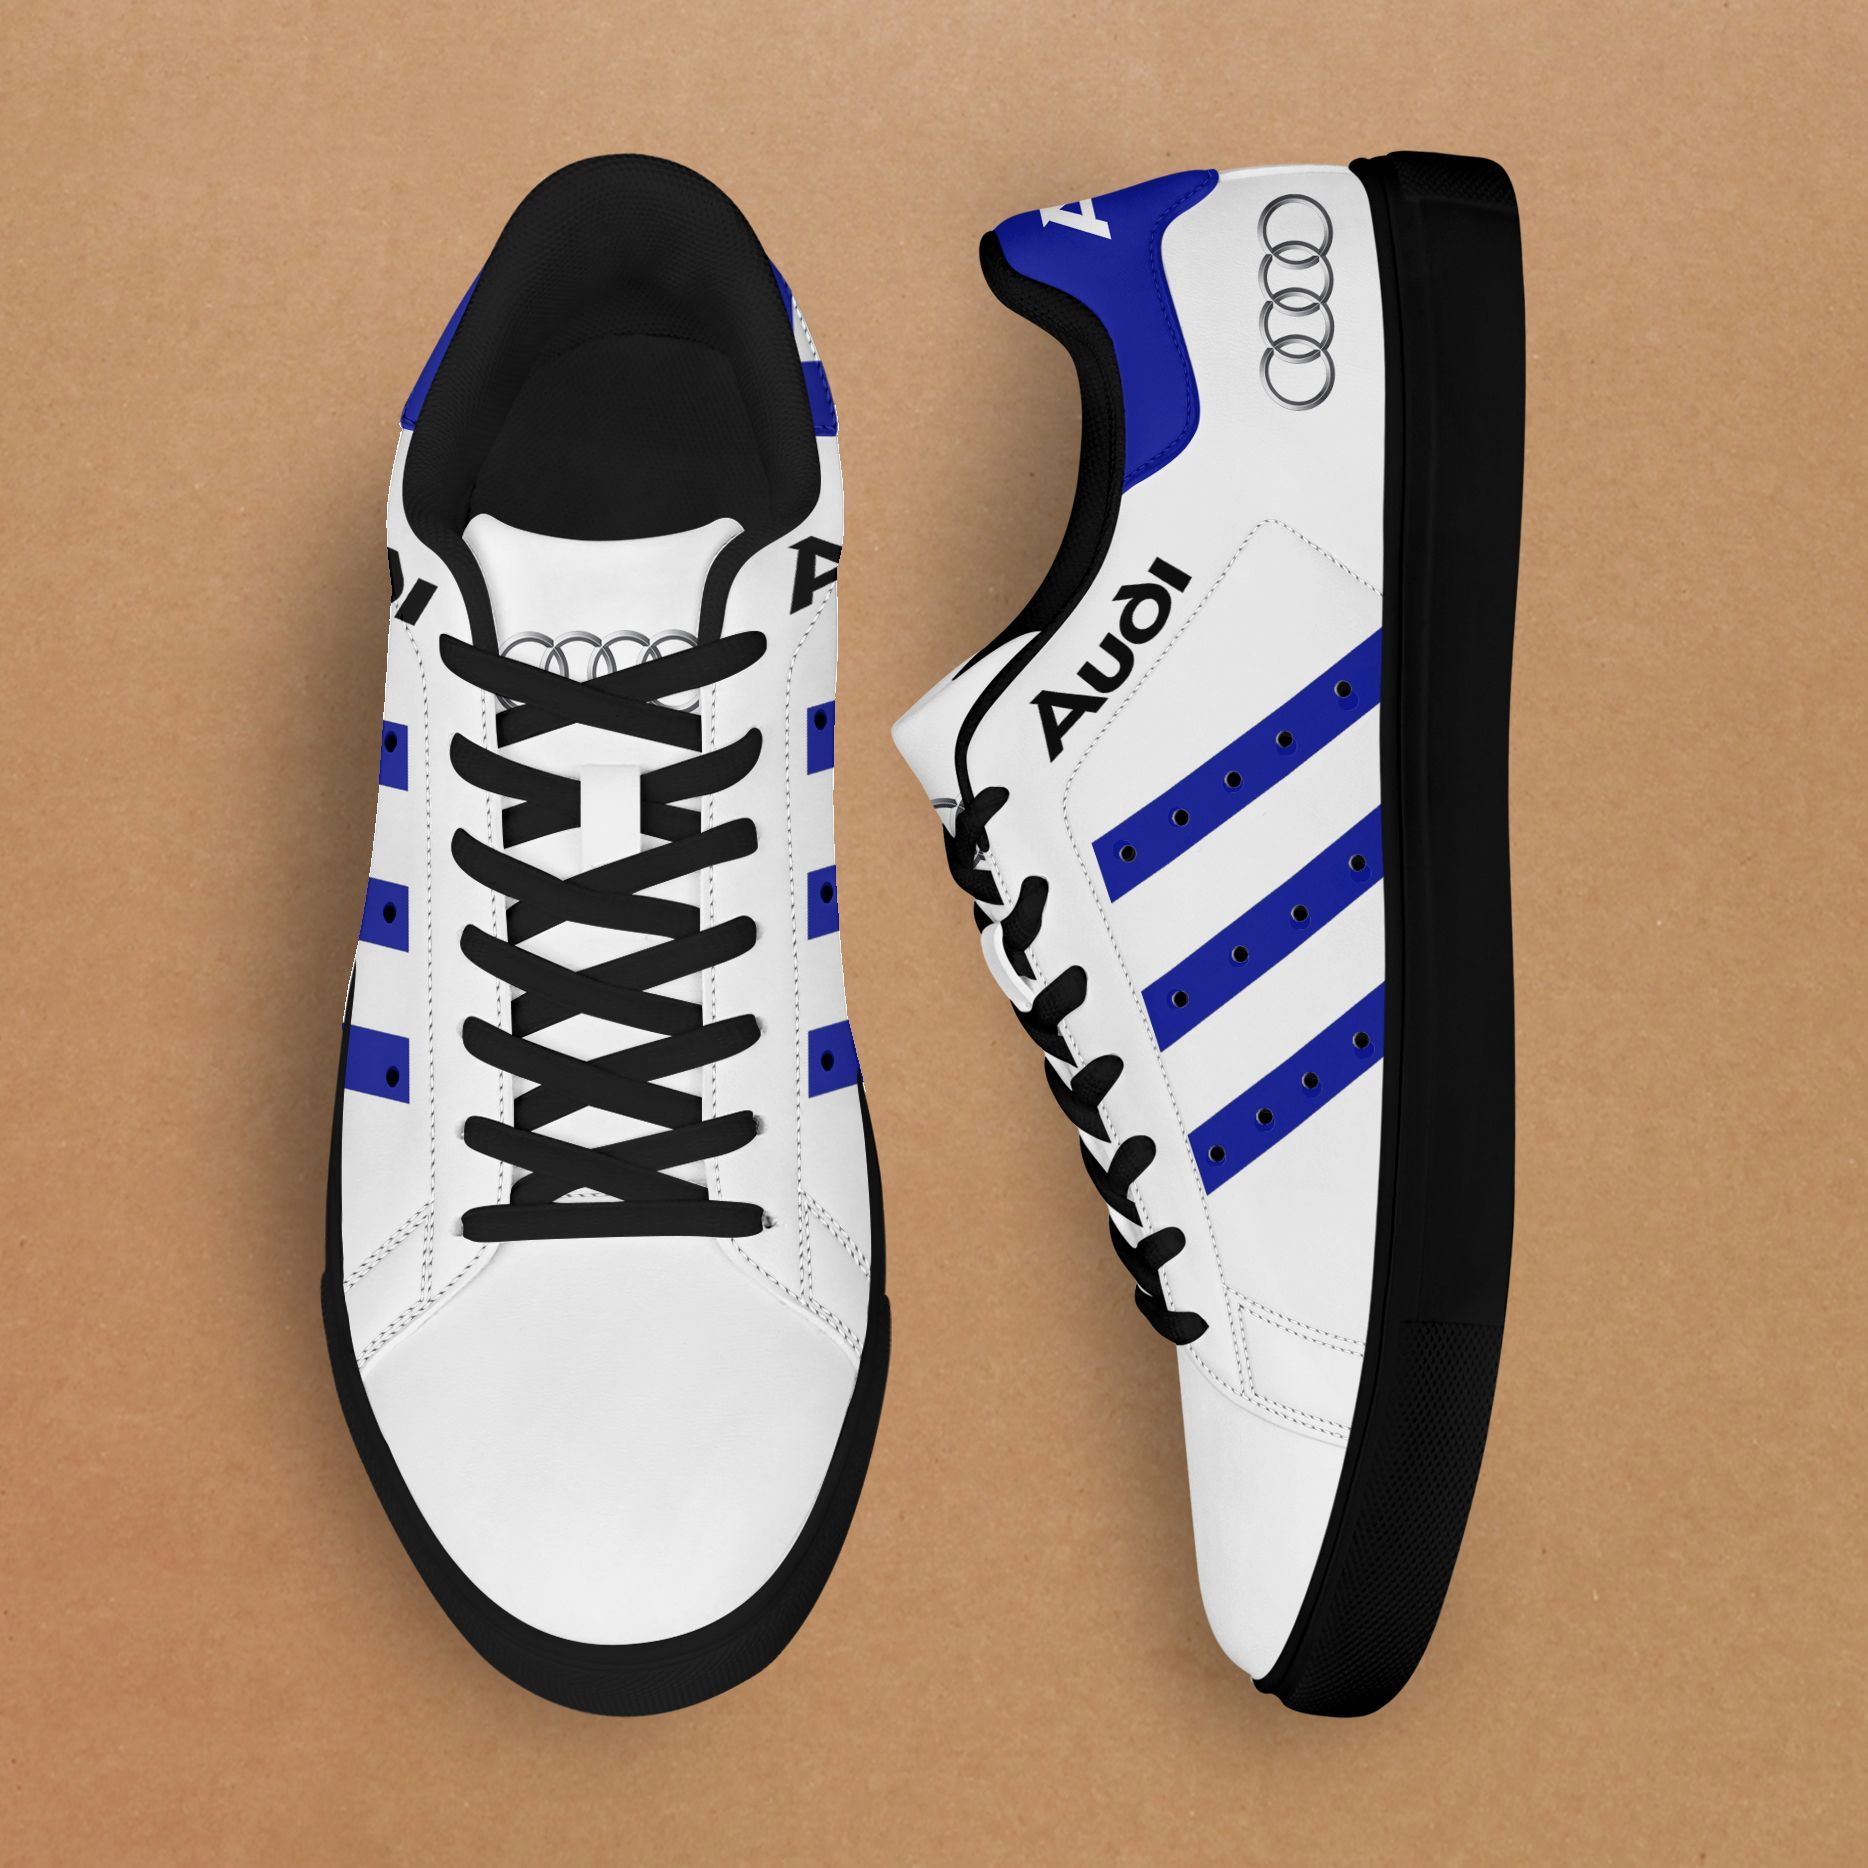 Audi classic Blue Limited Stan Smith Shoes